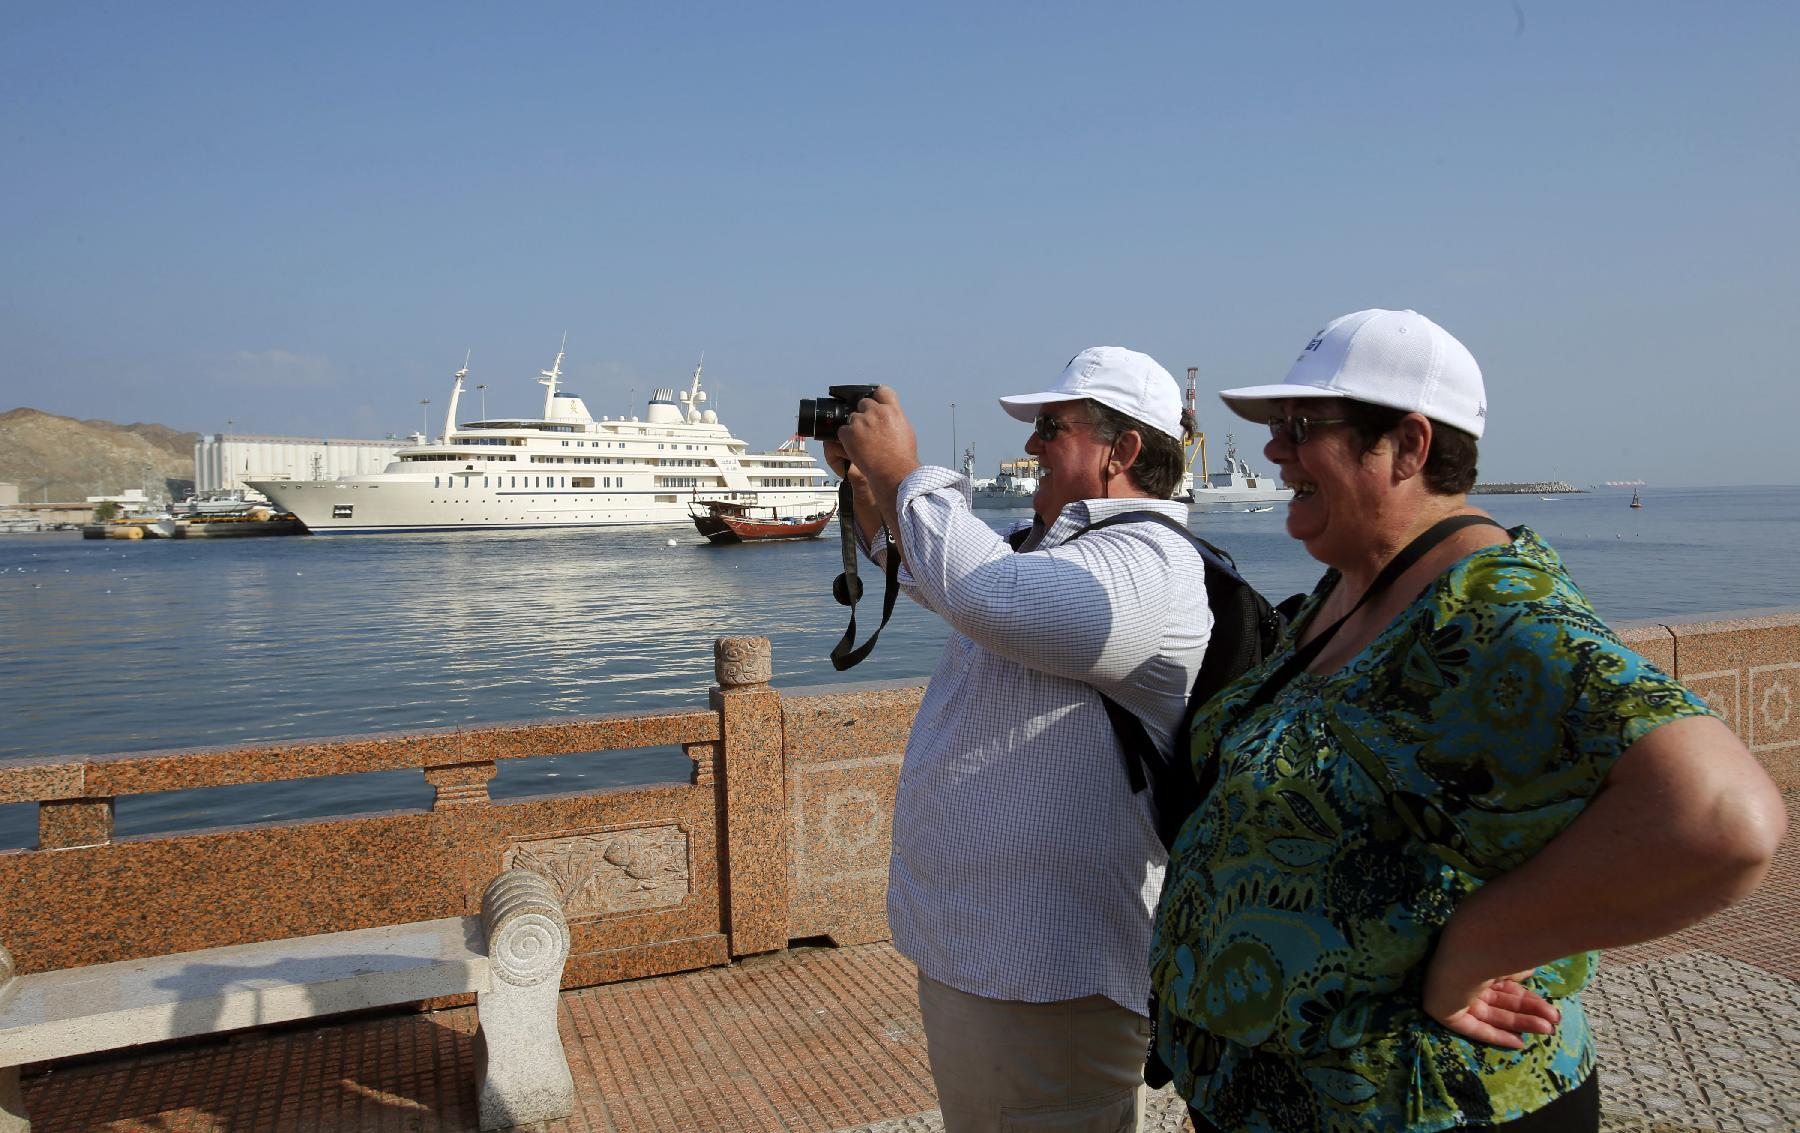 Tourists take pictures on December 19, 2014 in the Omani capital Muscat (AFP Photo/Mohammed Mahjoub)